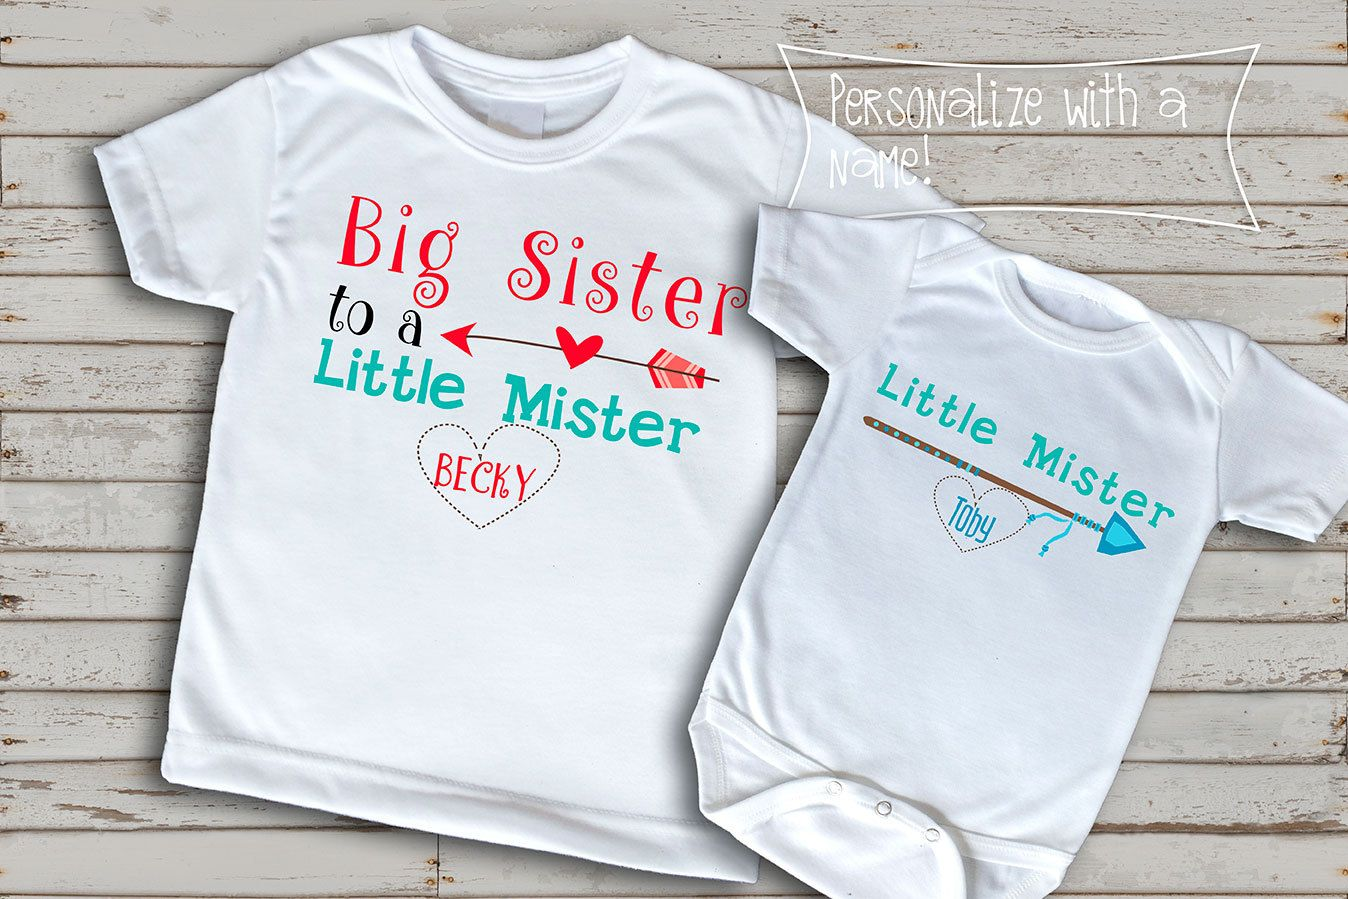 d4299e0f Big Sister Little Brother t-shirts, t-shirt for siblings, fun shirt for kids …